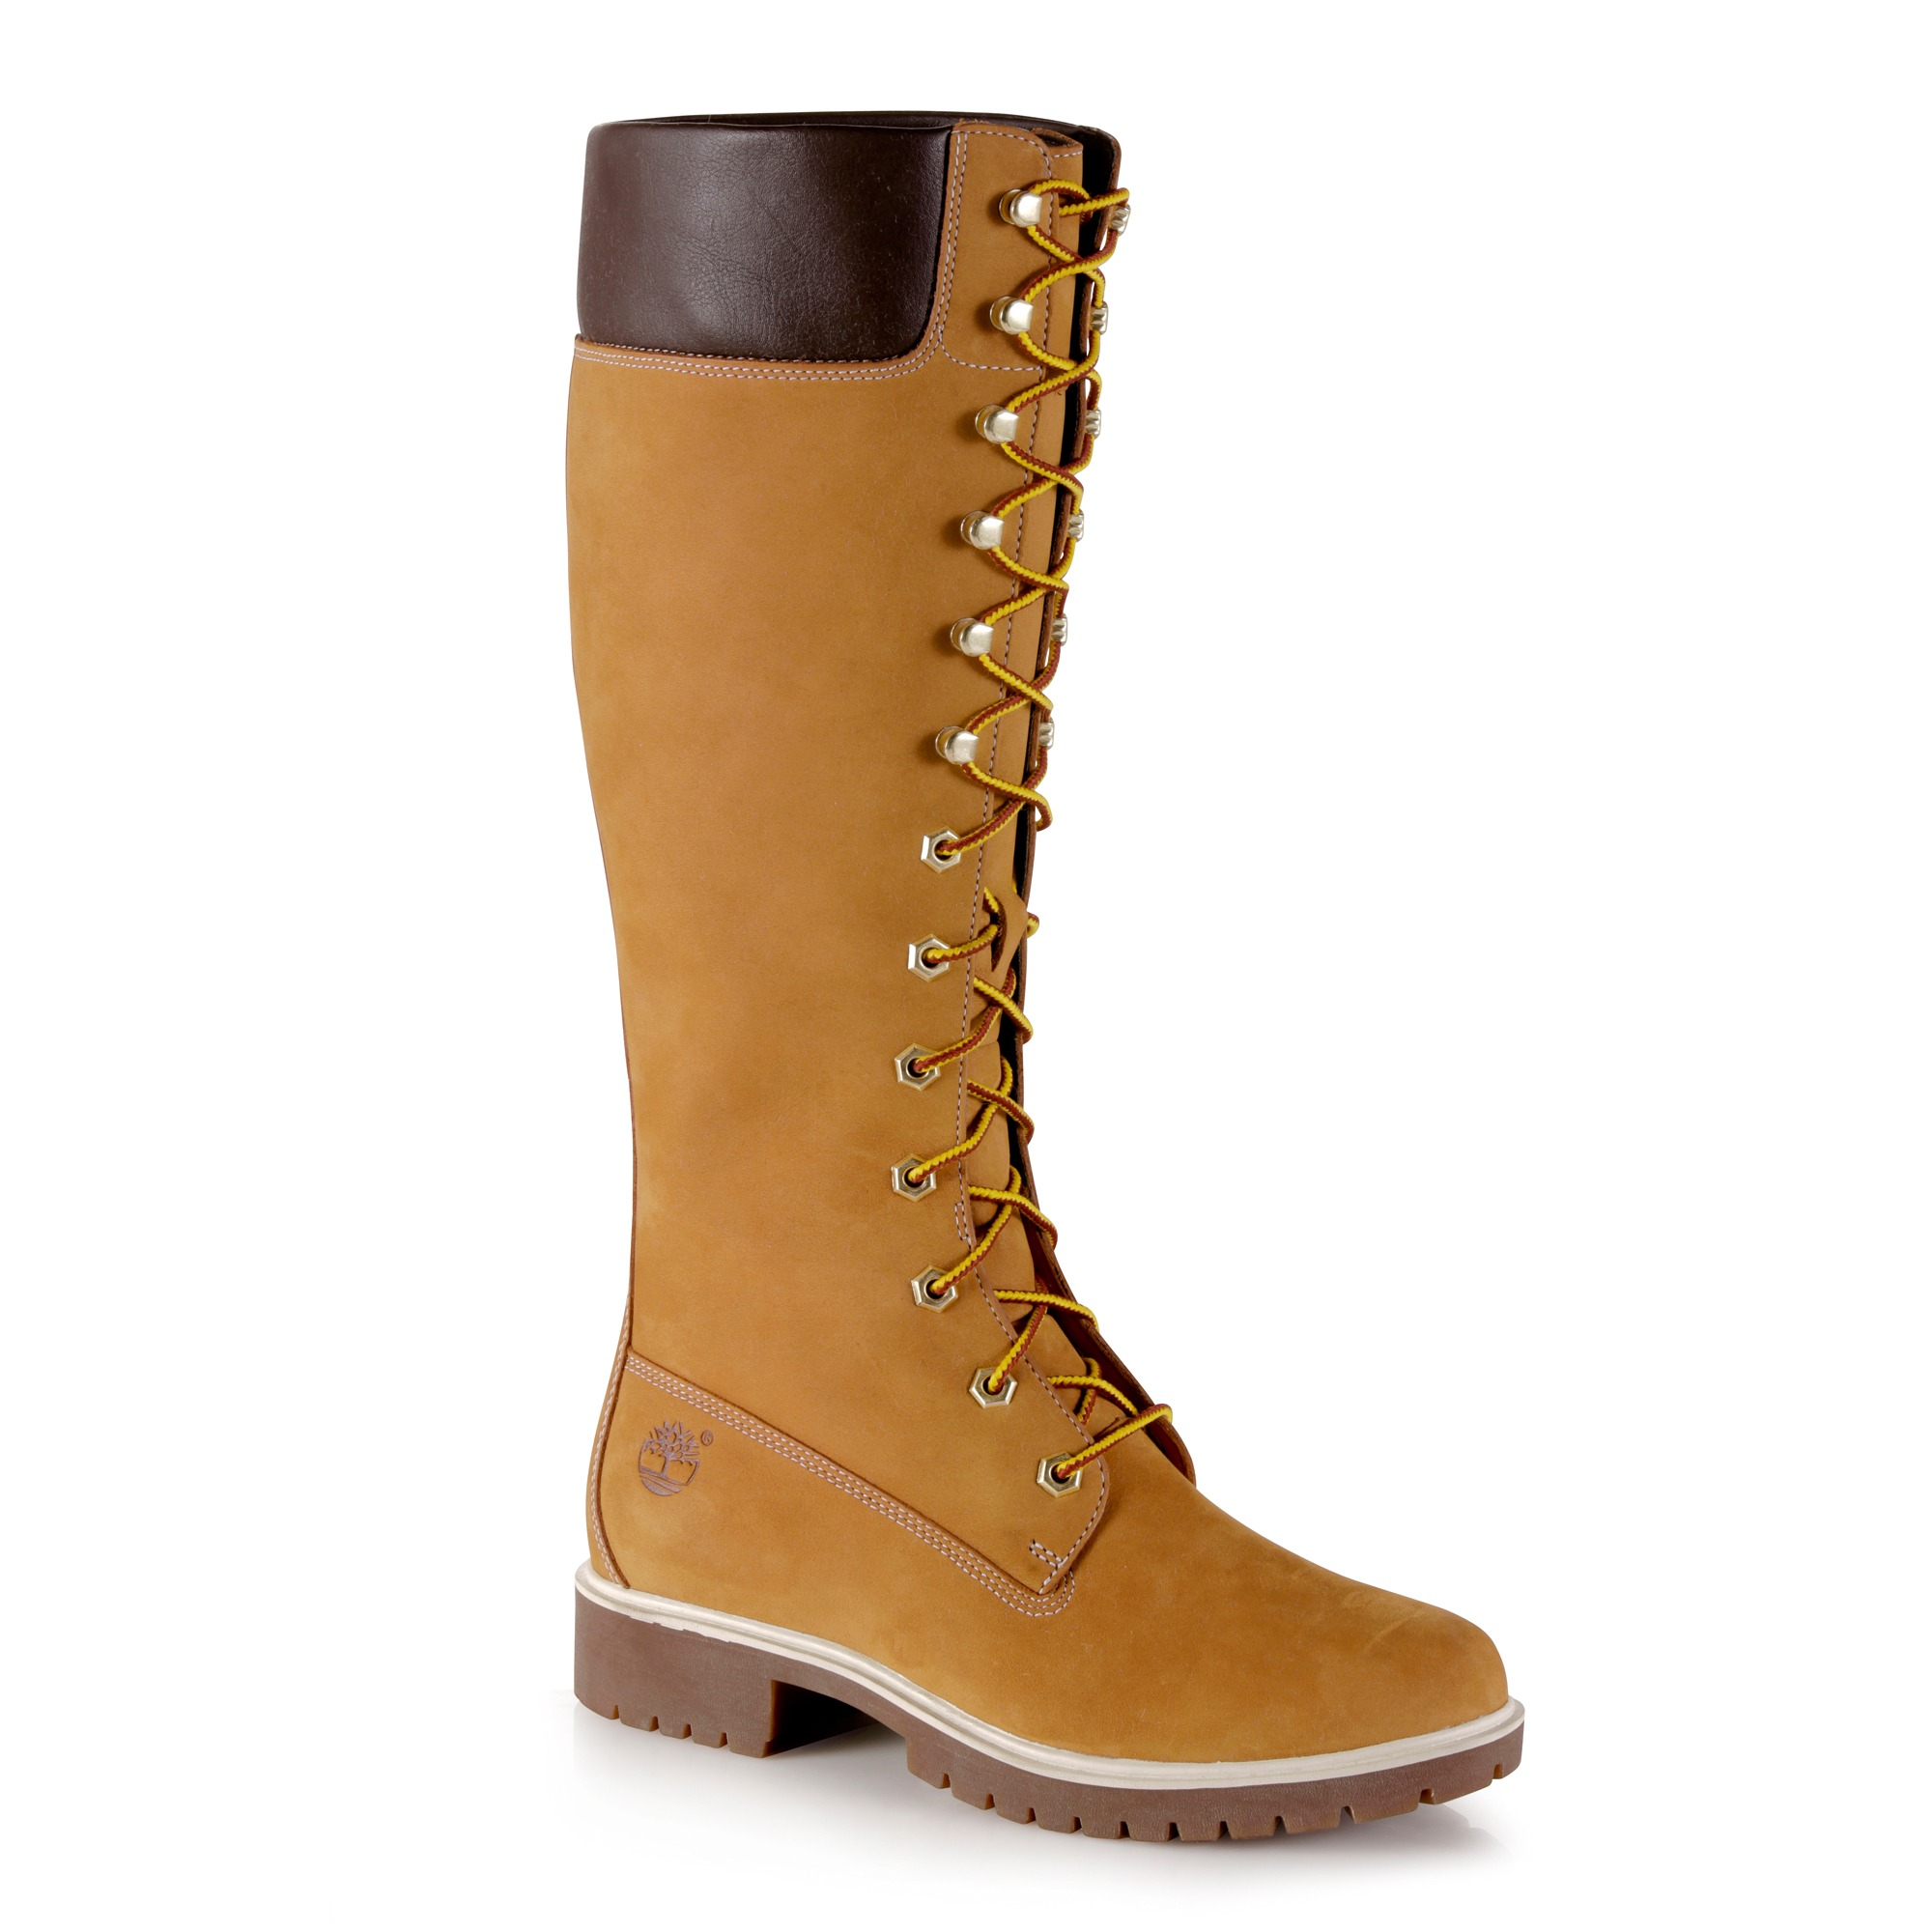 Suisses Bottes Cuir 3 Timberland F7xaw5 Chaussures Femme qrtzrw6